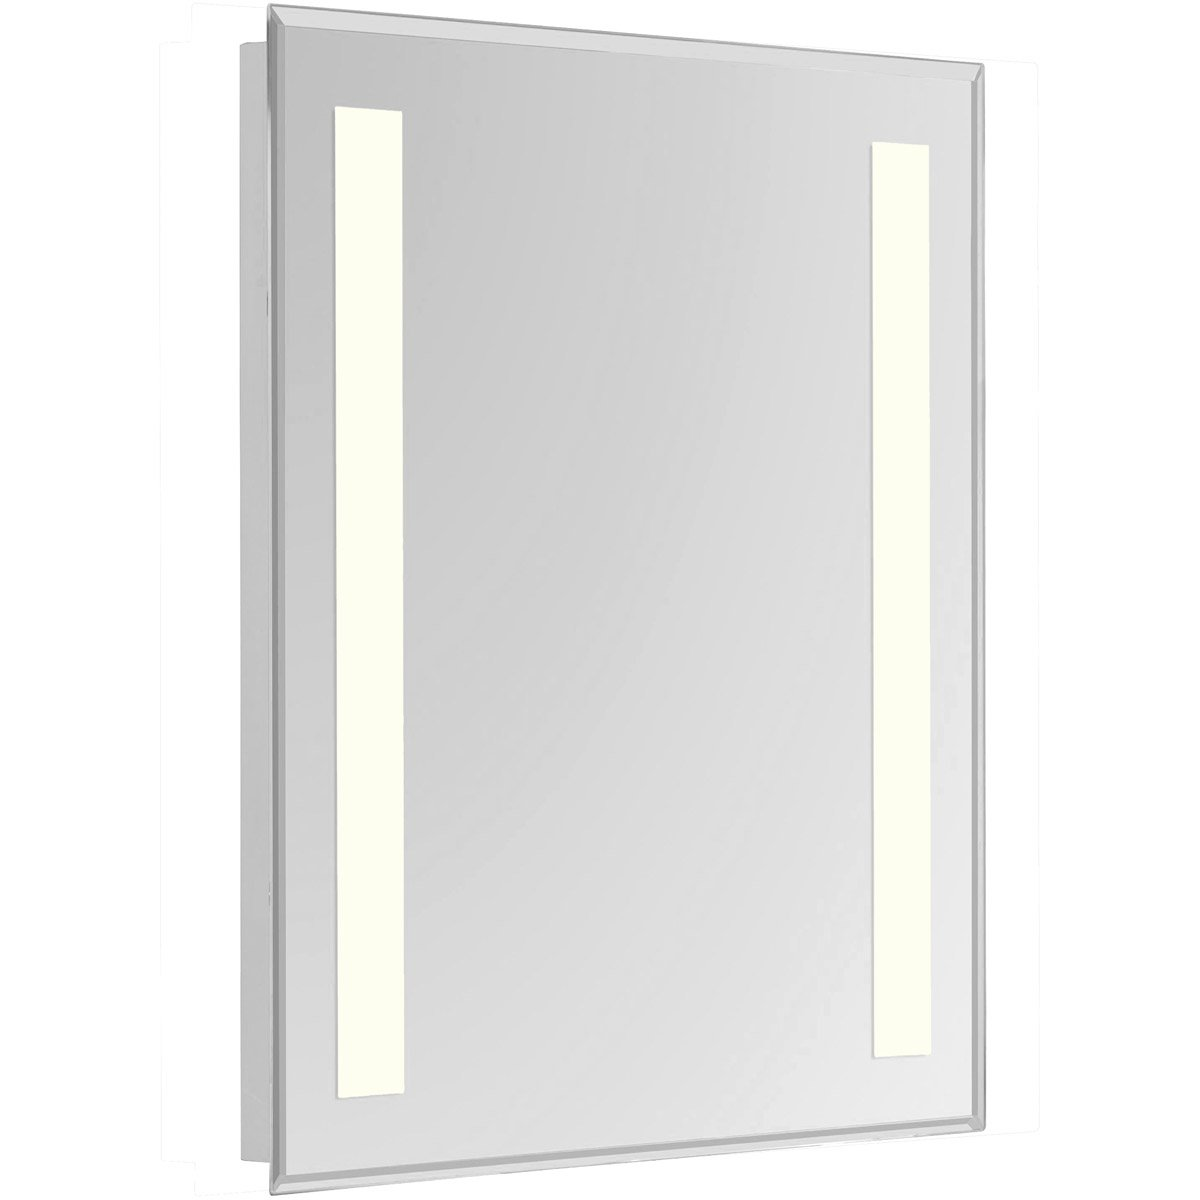 Nova 40 X 24 Hardwired Glossy White Led Wall Mirror (Mre-6314) Led Mirror